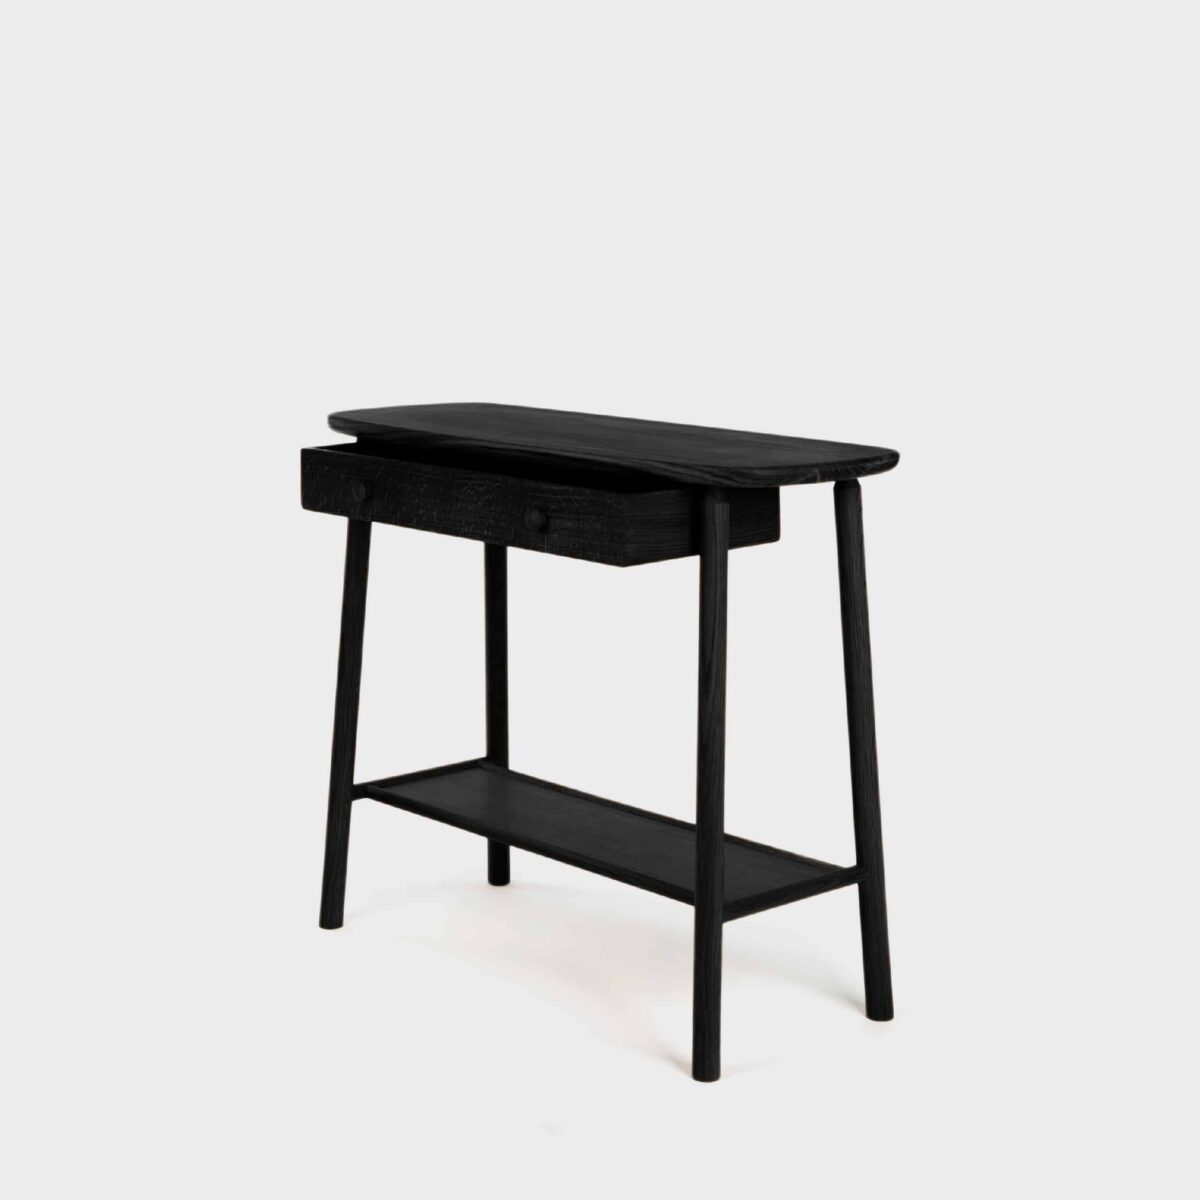 Hardy_Console_Drawer_Black_003